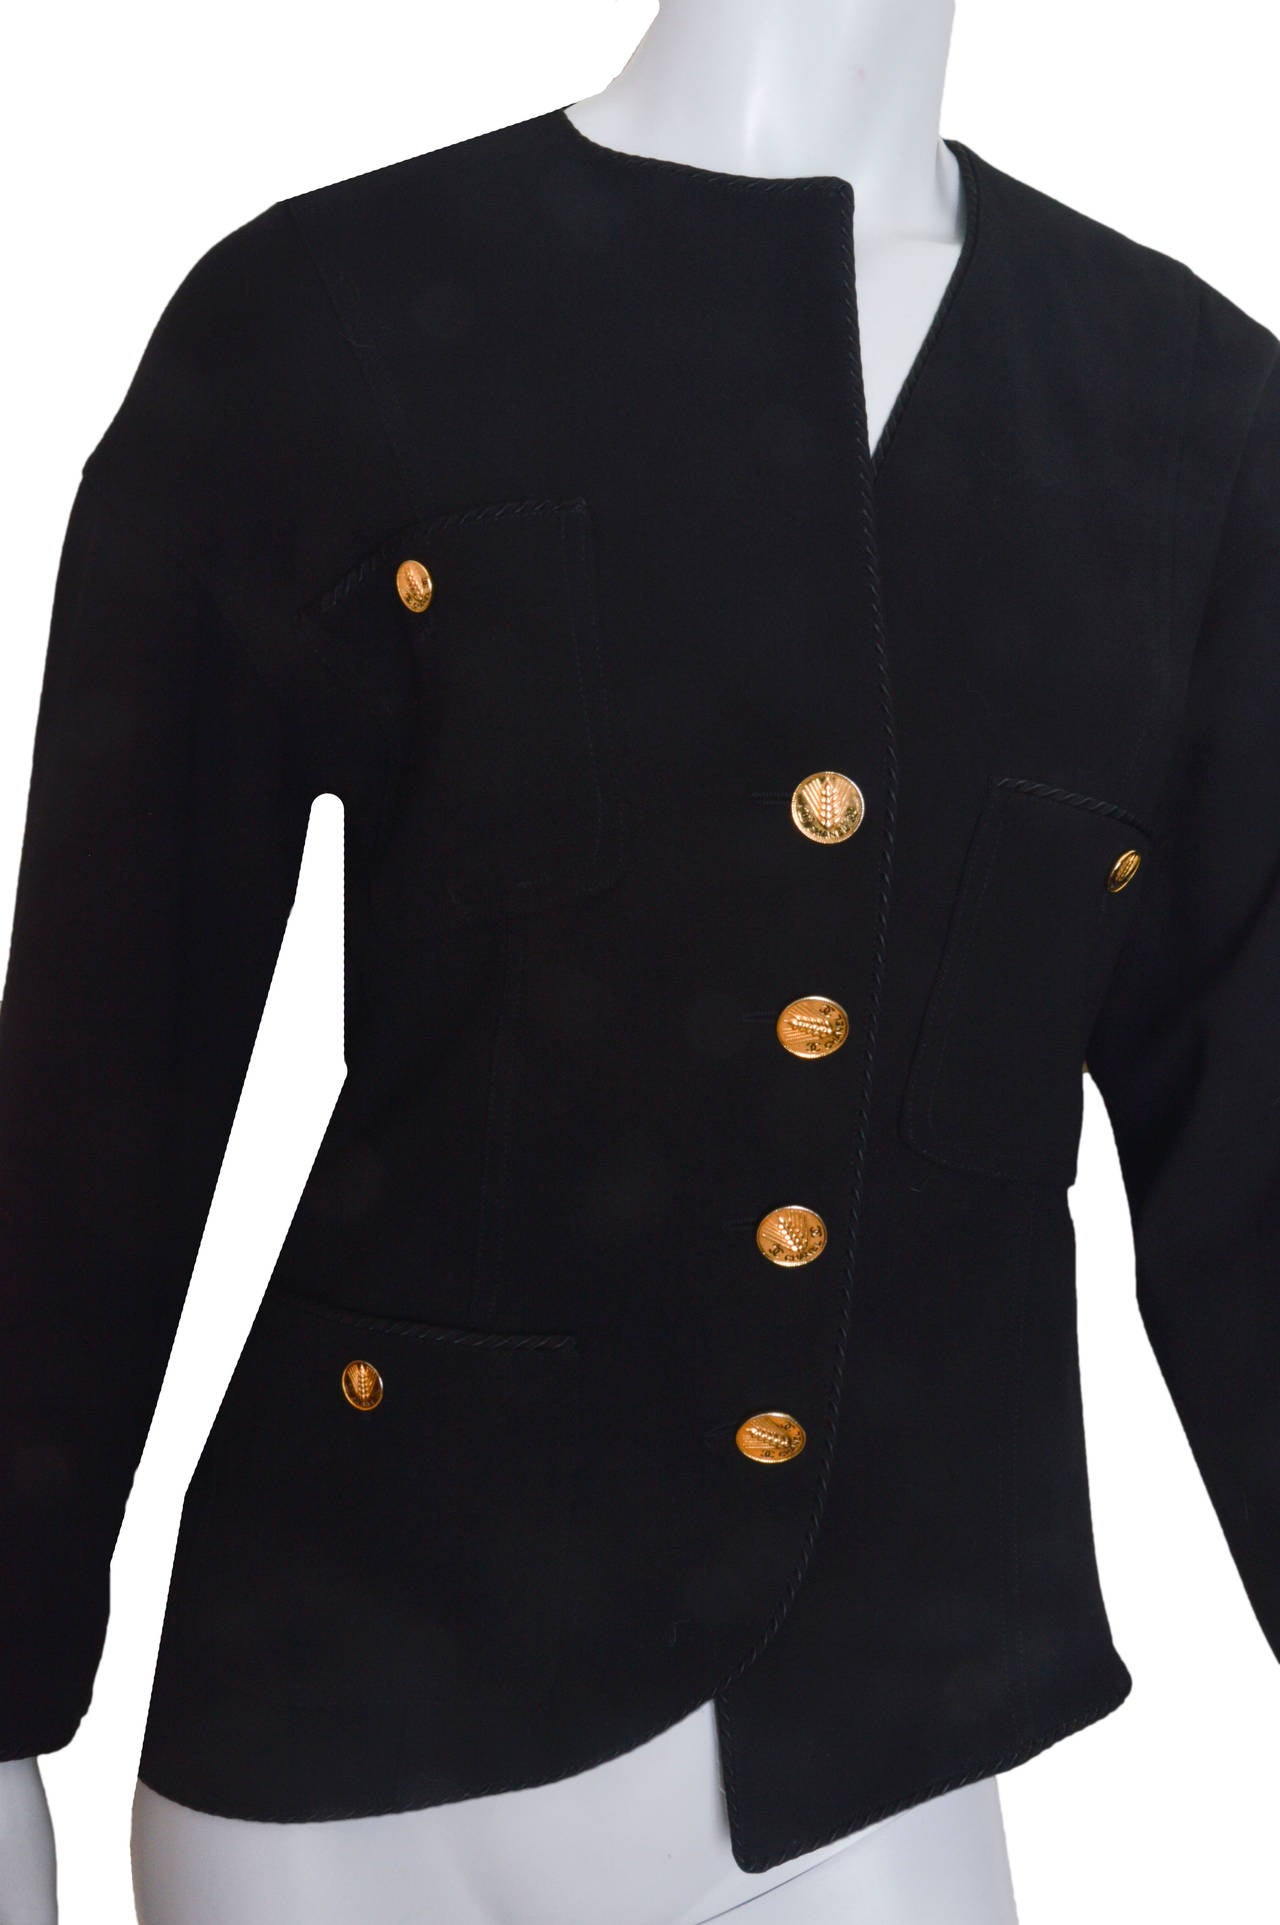 Chanel Black Asymmetrical Jacket In Excellent Condition For Sale In San Francisco, CA